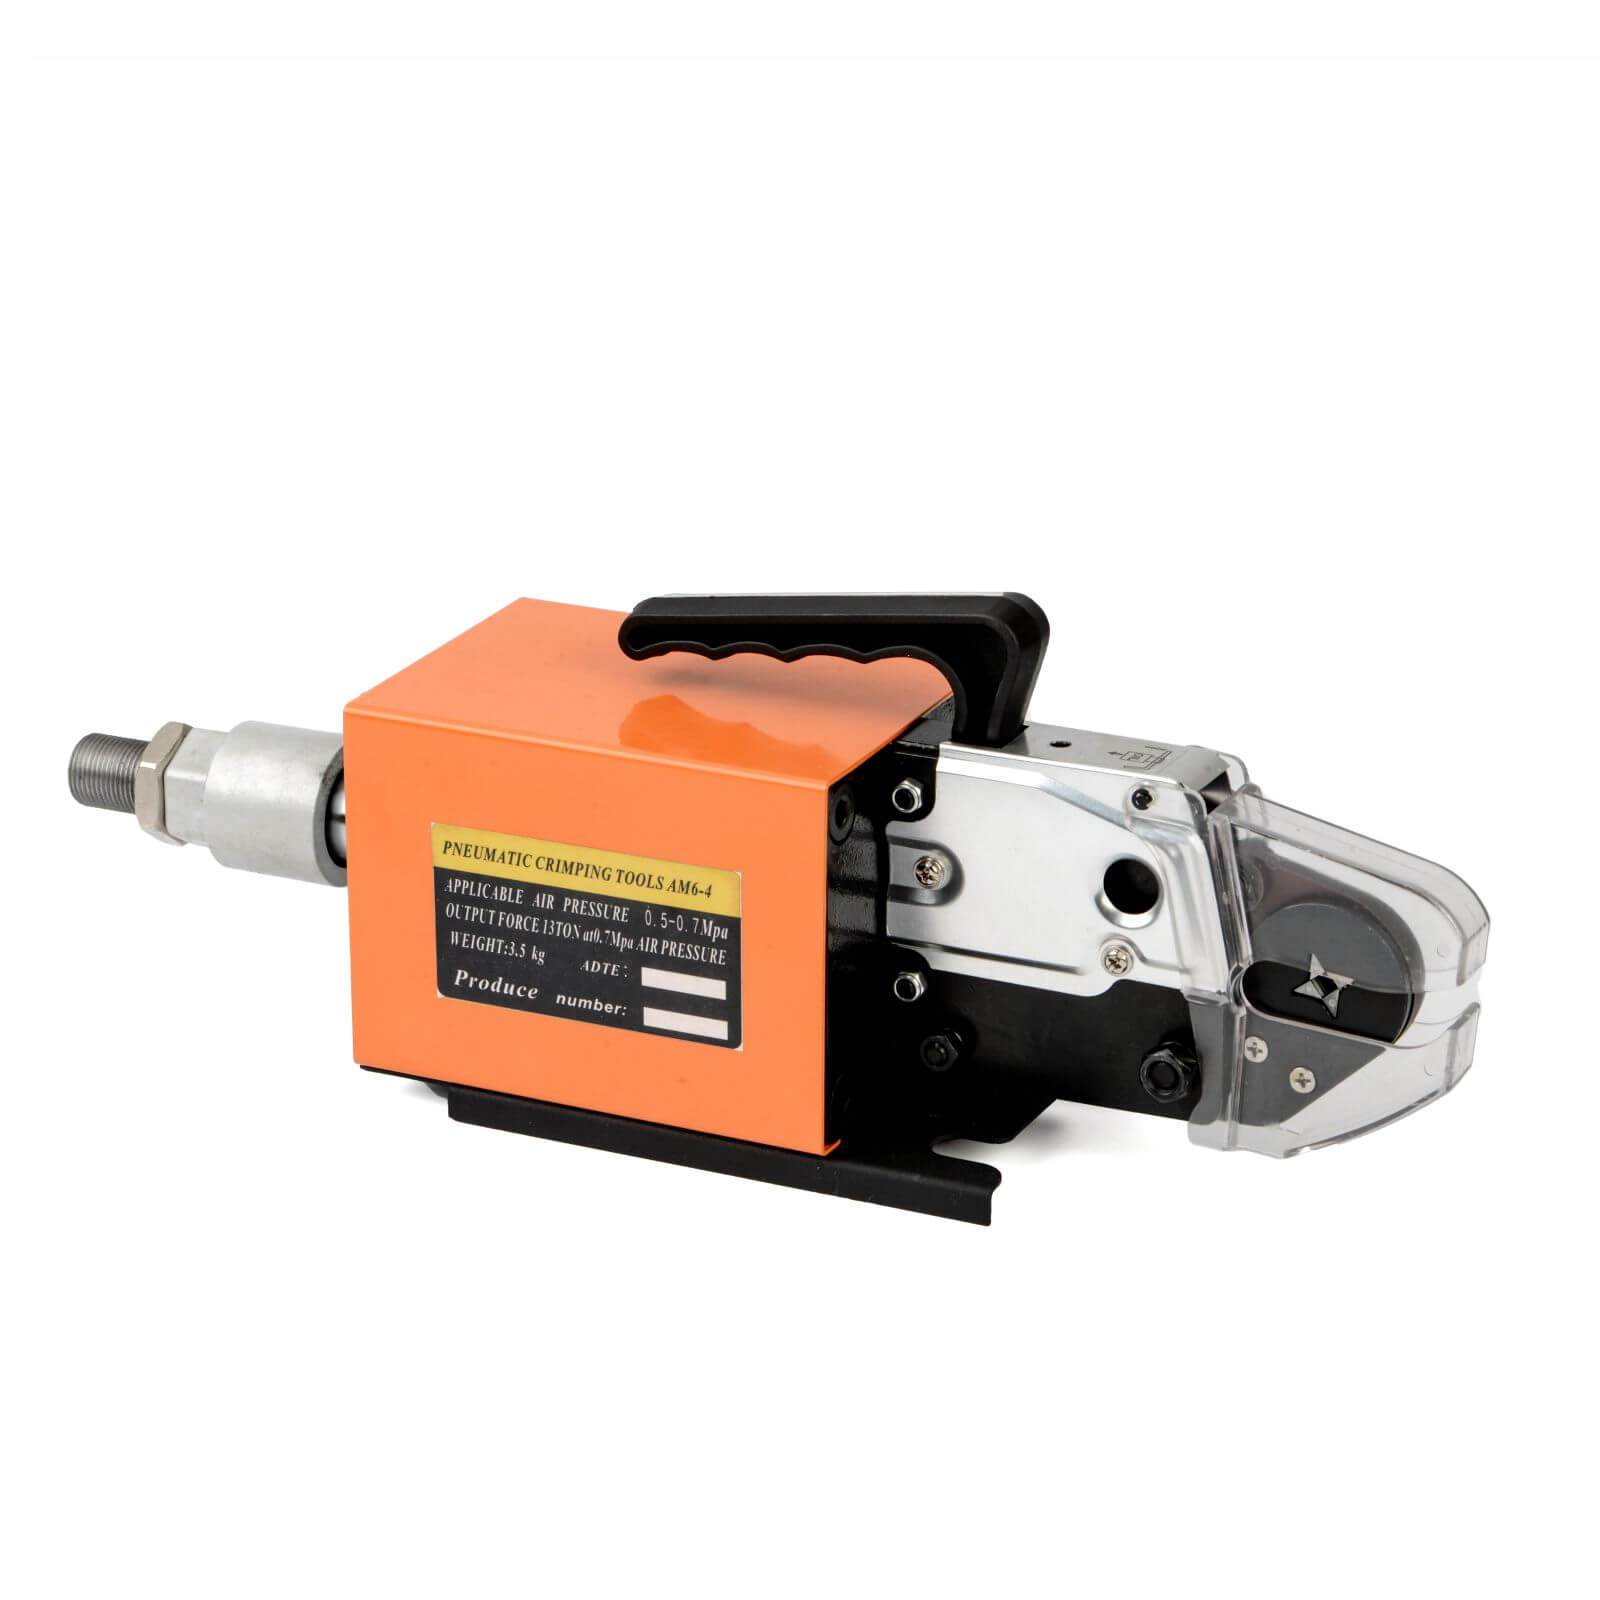 Pneumatic Ferrule Crimp Machine for 0.08-6 mm² Square Type